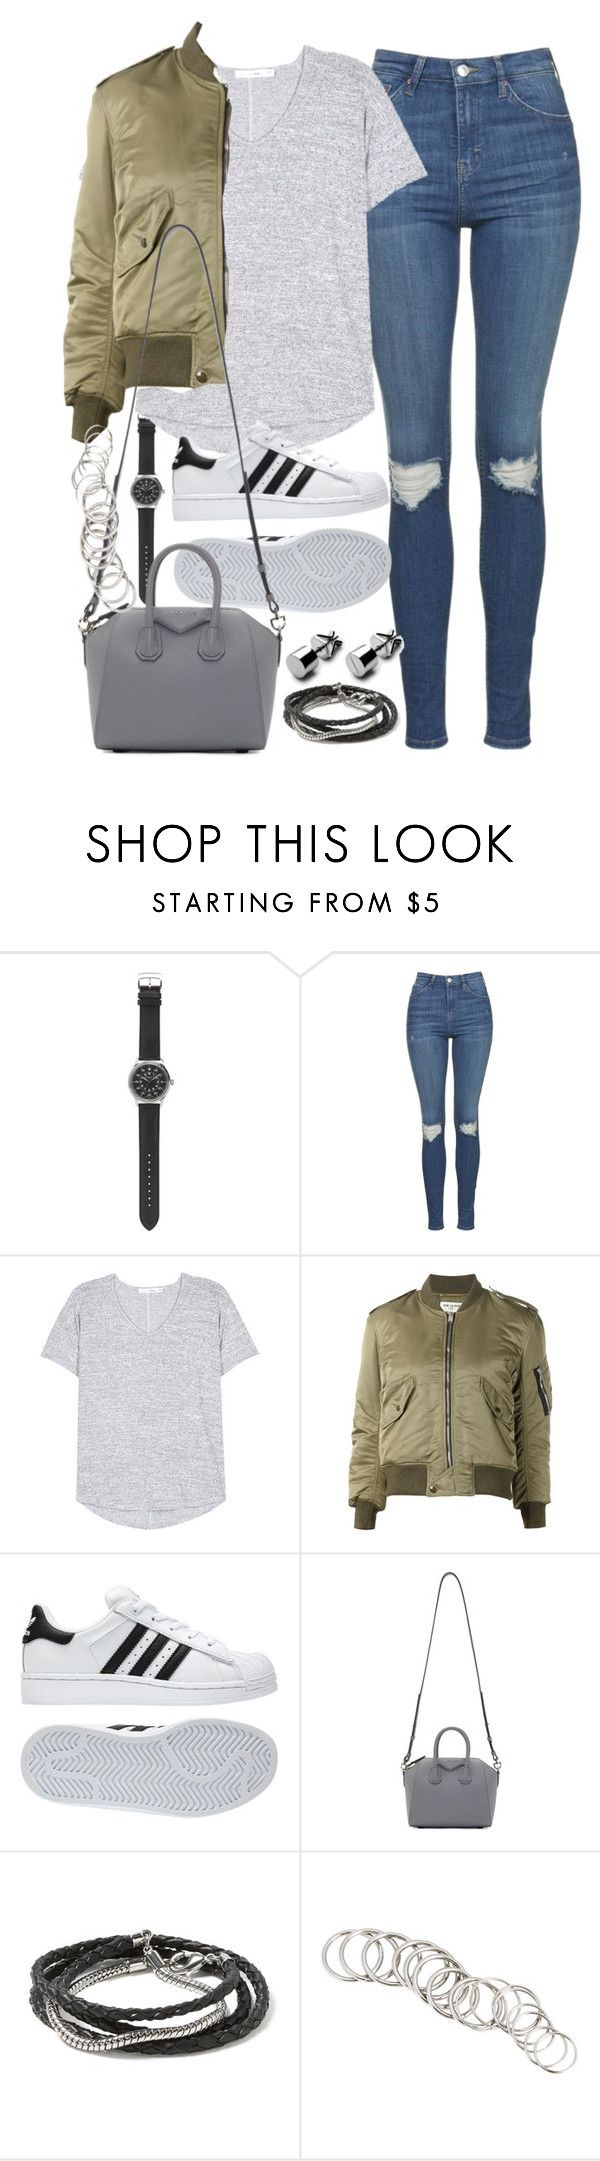 """""""Outfit for a casual day with friends"""" by ferned ❤ liked on Polyvore featuring J.Crew, Topshop, rag & bone, Yves Saint Laurent, adidas, Givenchy, Banana Republic and H&M"""